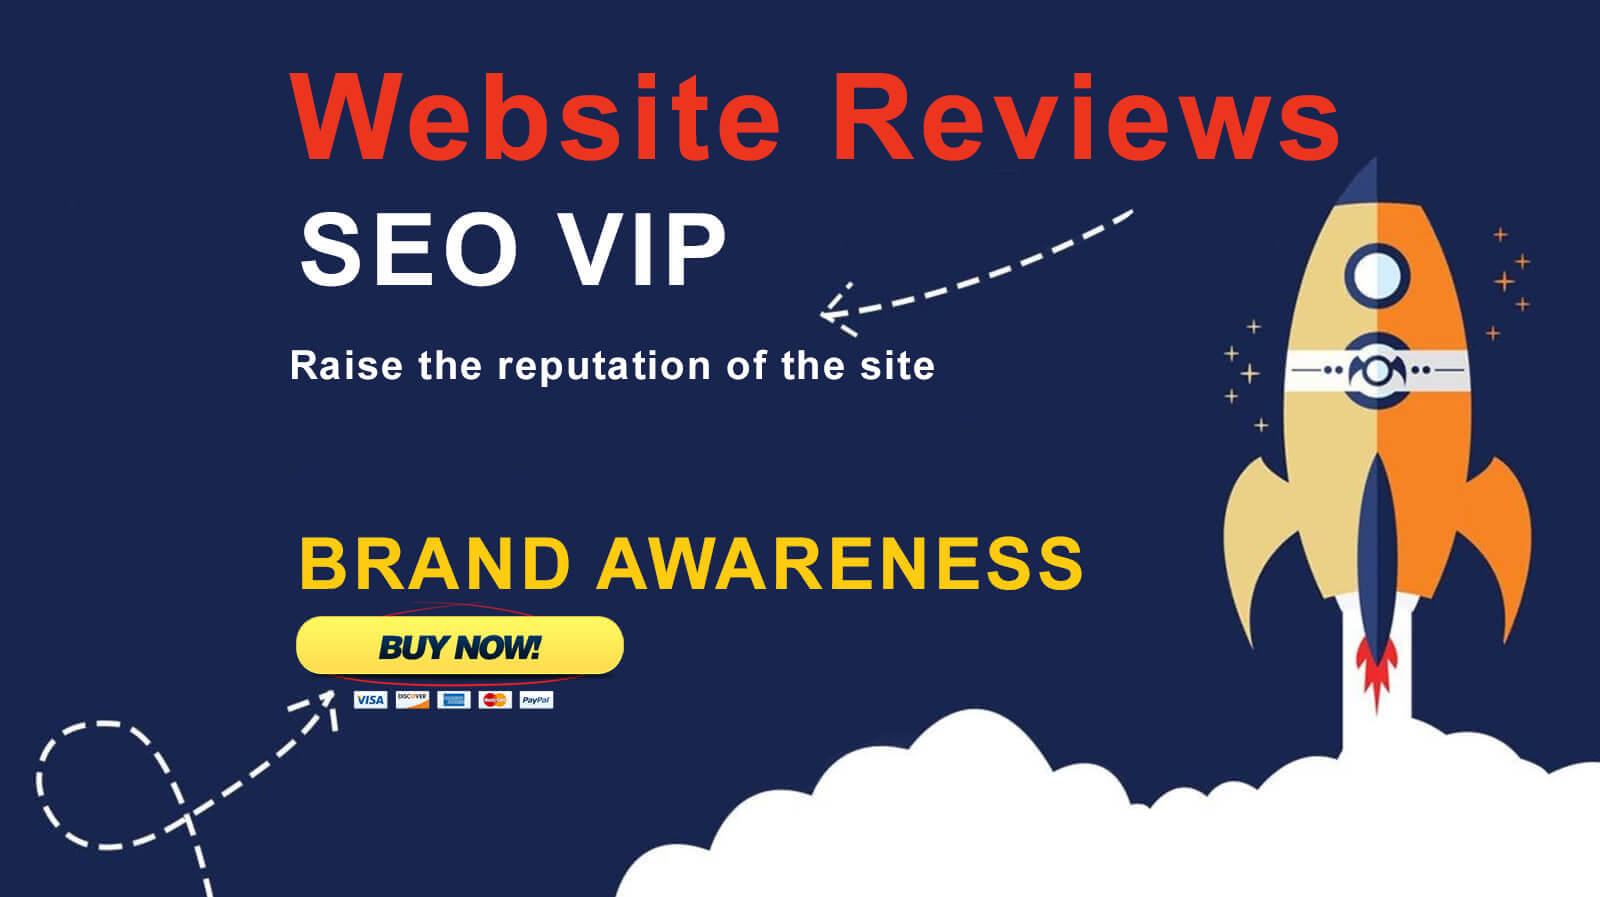 BUY GOOD REVIEWS FOR ANY SITE - SEO VIP - WEBSITE REVIEWS